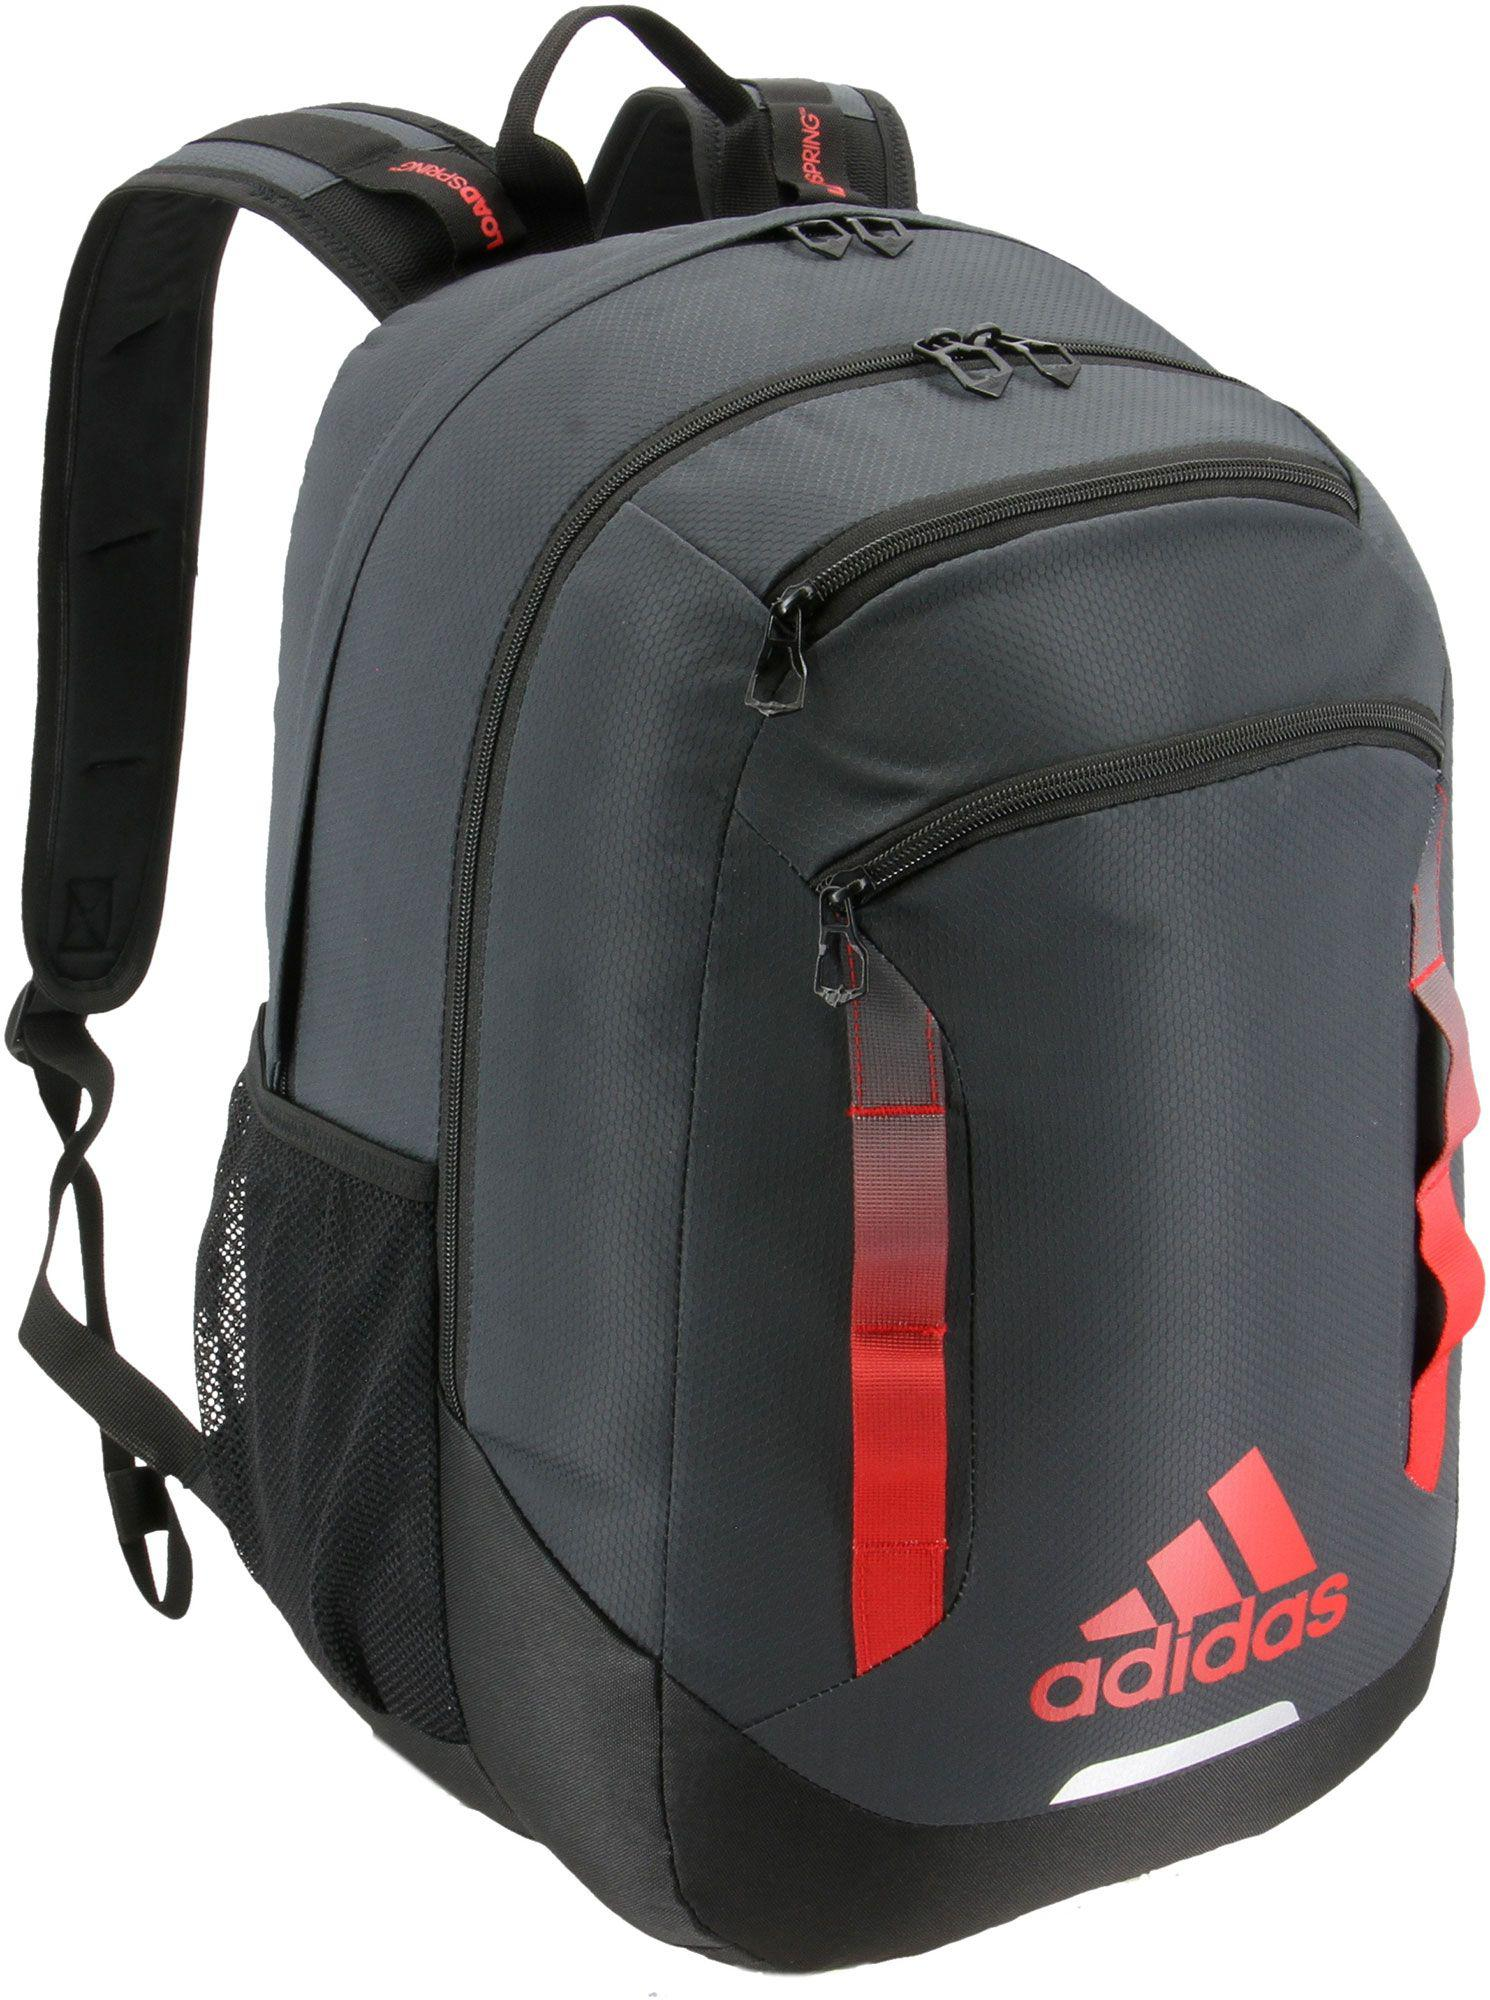 Lyst - adidas Rival Xl Backpack in Black for Men 4a4ab91996